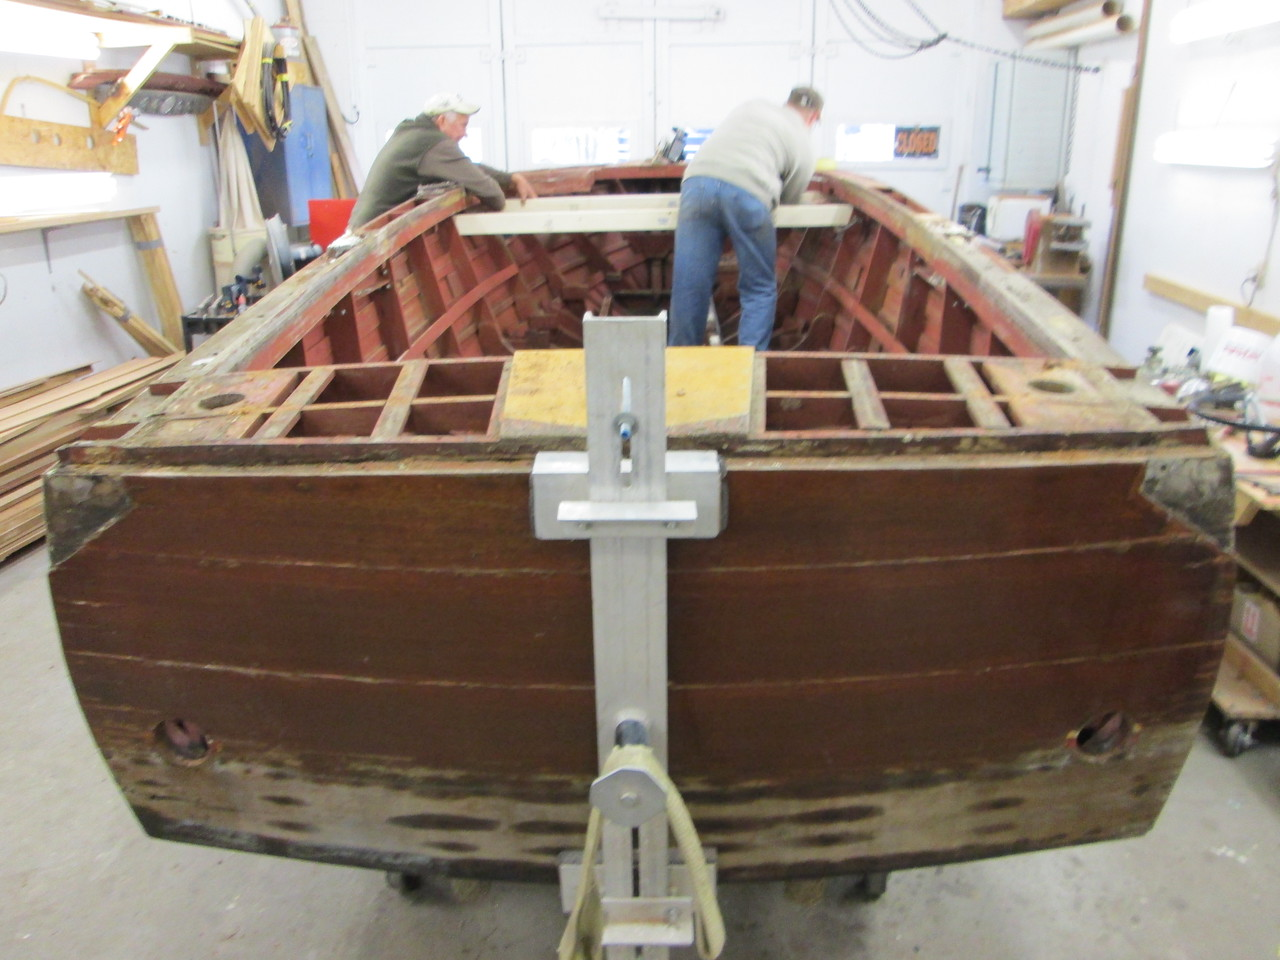 Getting the hull ready to turn over.